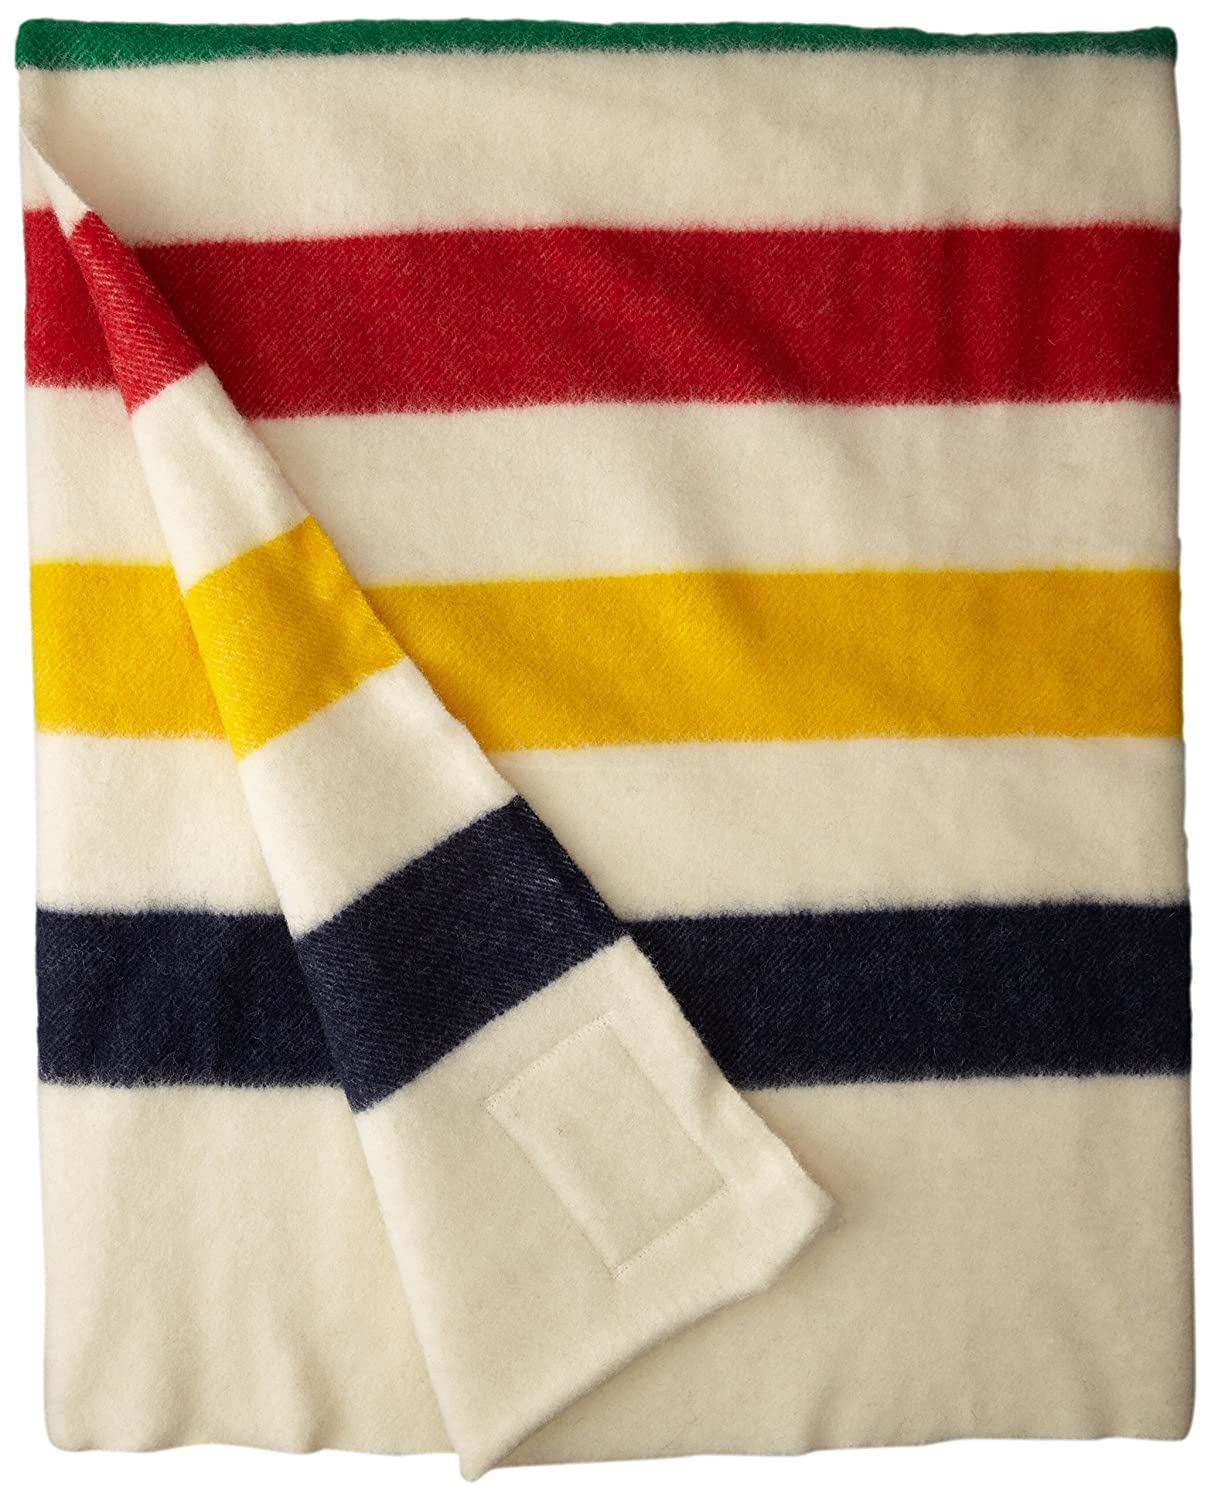 Amazon hudson bay 6 point blanket natural with multi stripes amazon hudson bay 6 point blanket natural with multi stripes home kitchen bankloansurffo Image collections